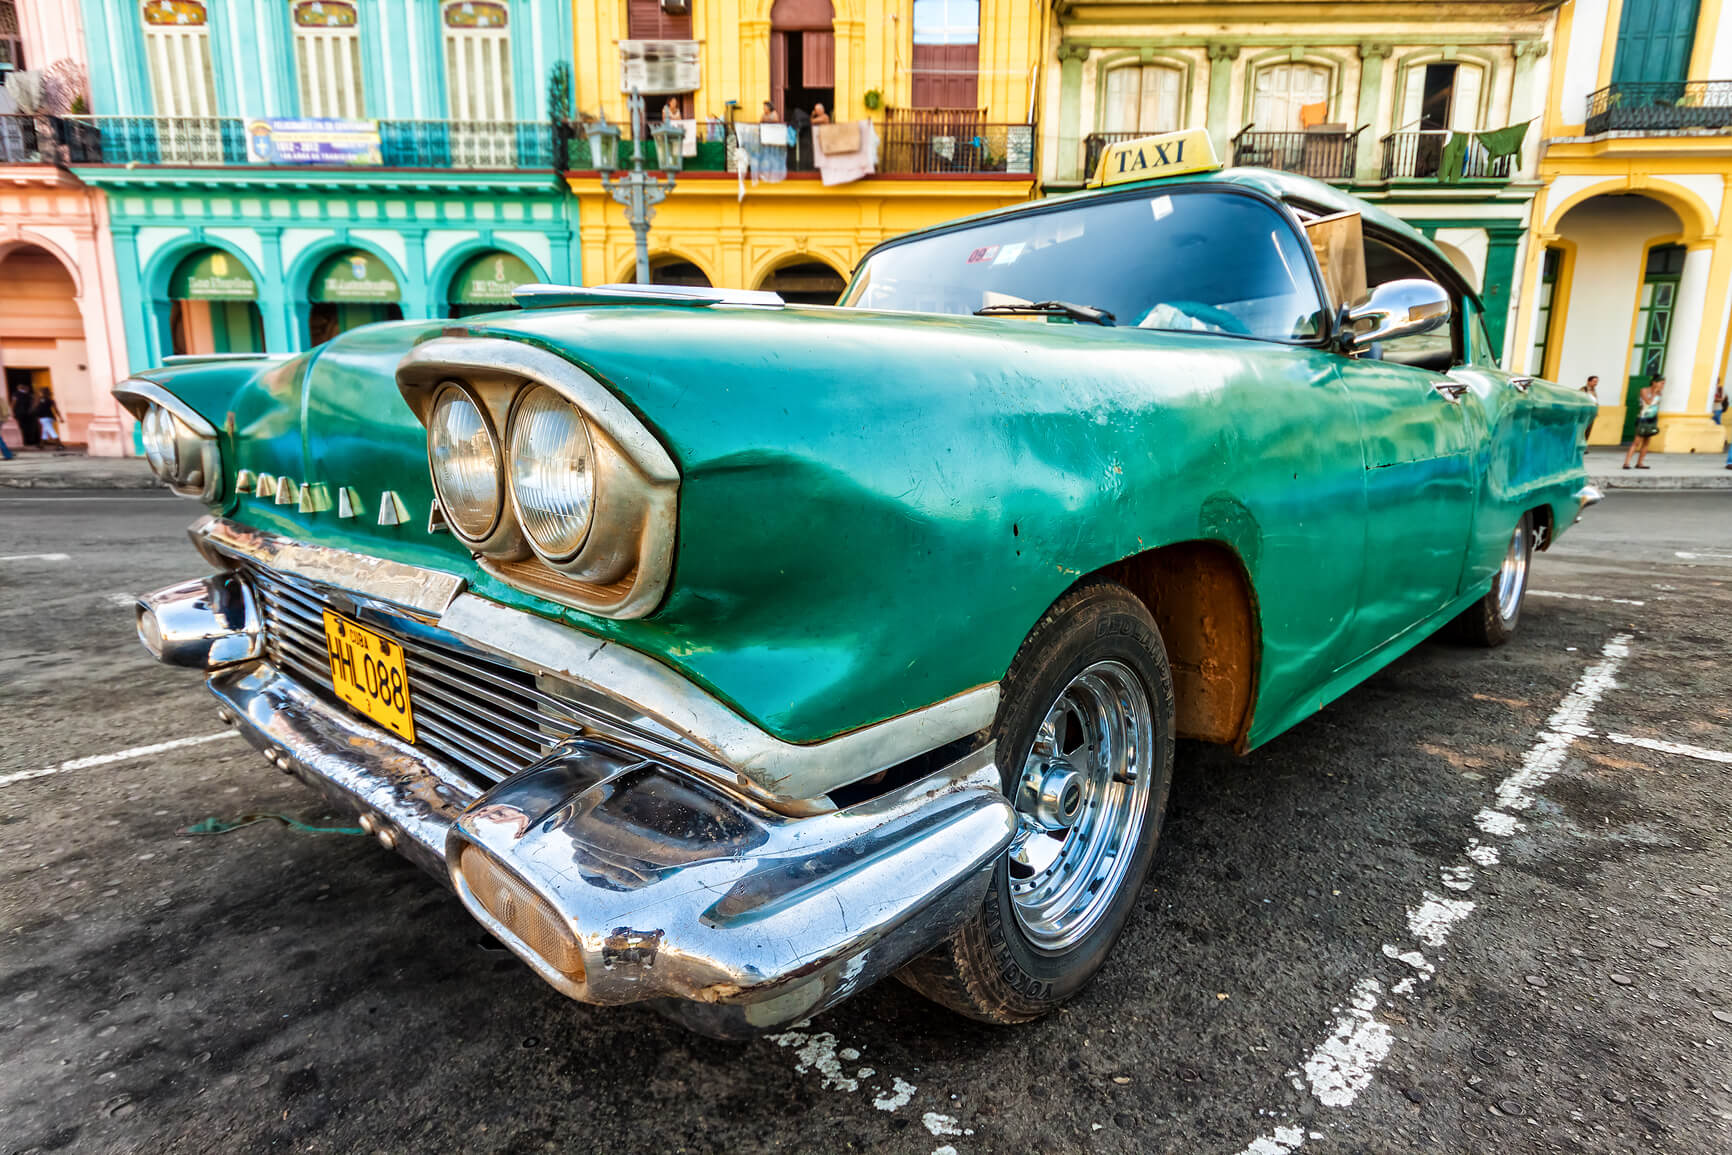 SUMMER: Los Angeles to Havana, Cuba for only $211 roundtrip (Feb-Aug dates)